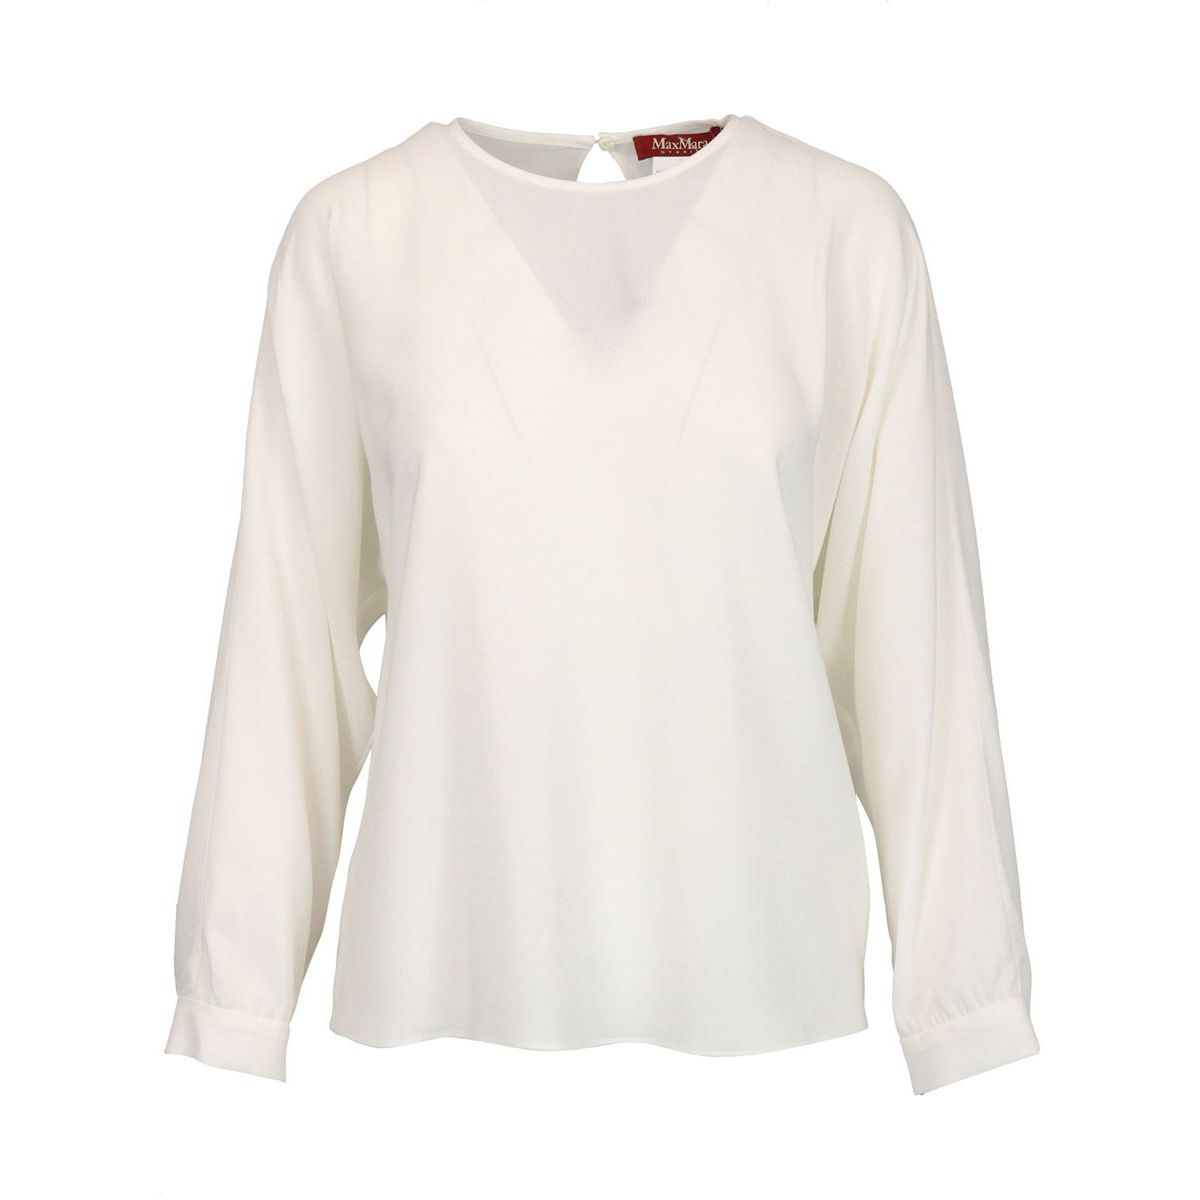 BORIS silk shirt White Max Mara